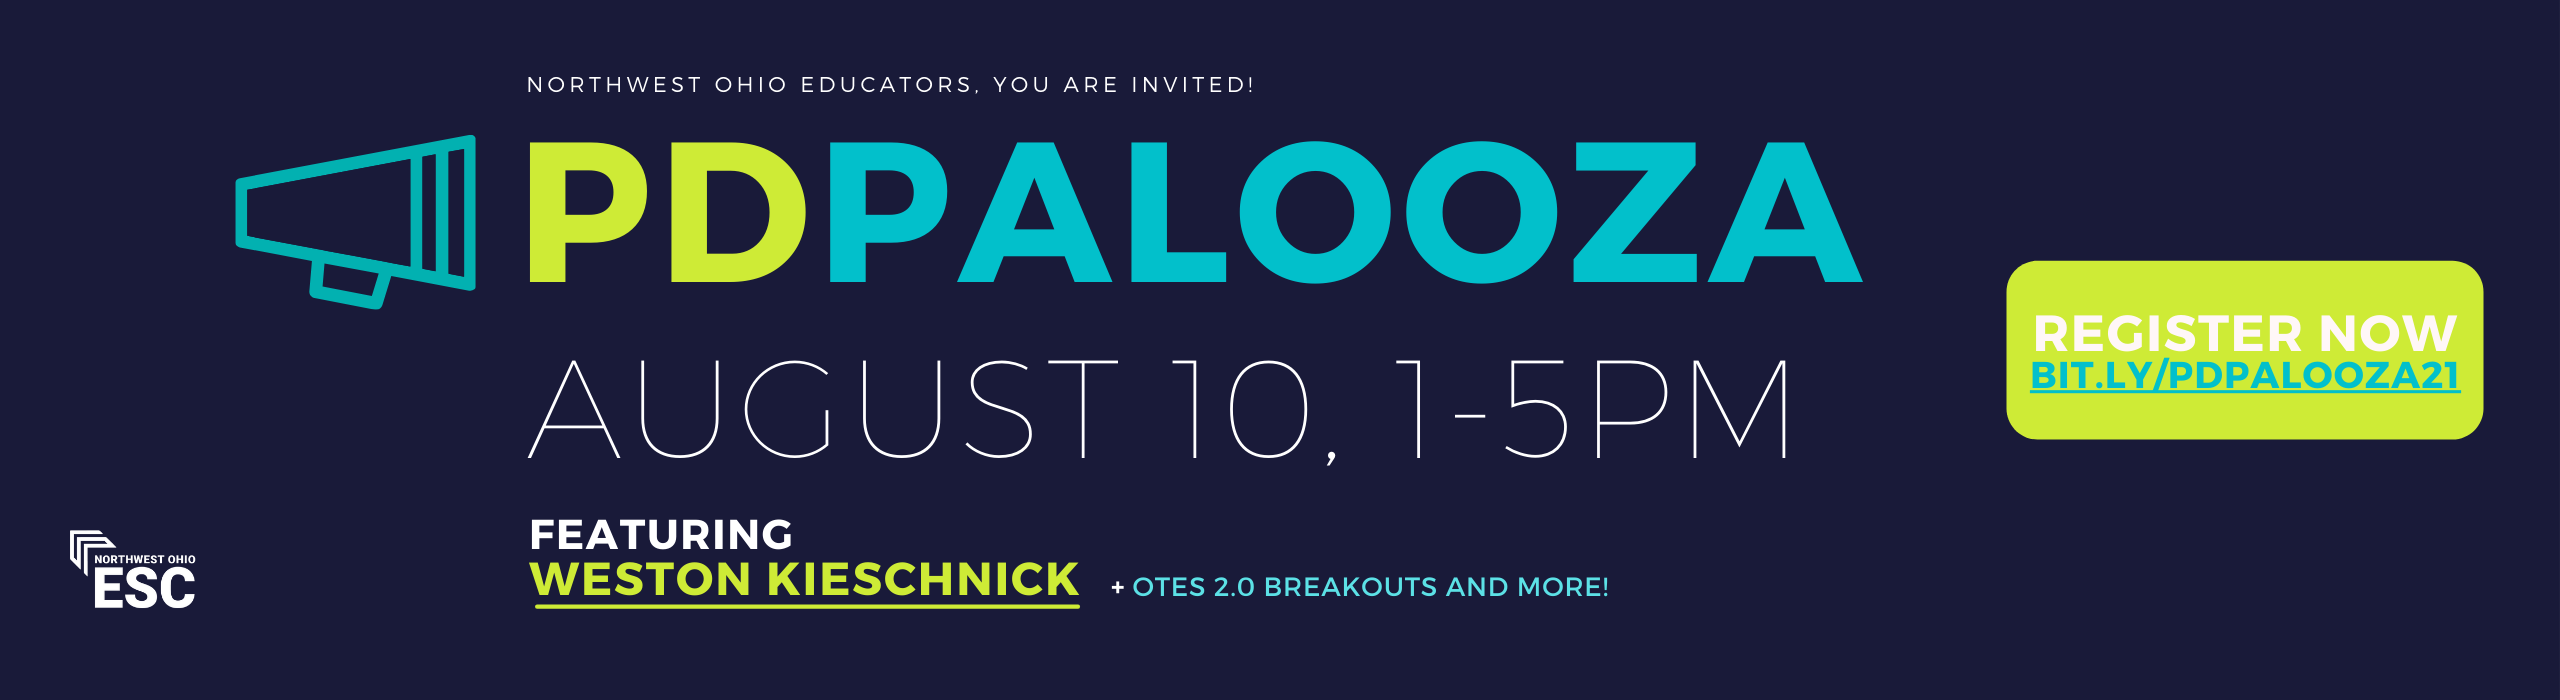 Register for PD Palooza on August 10th